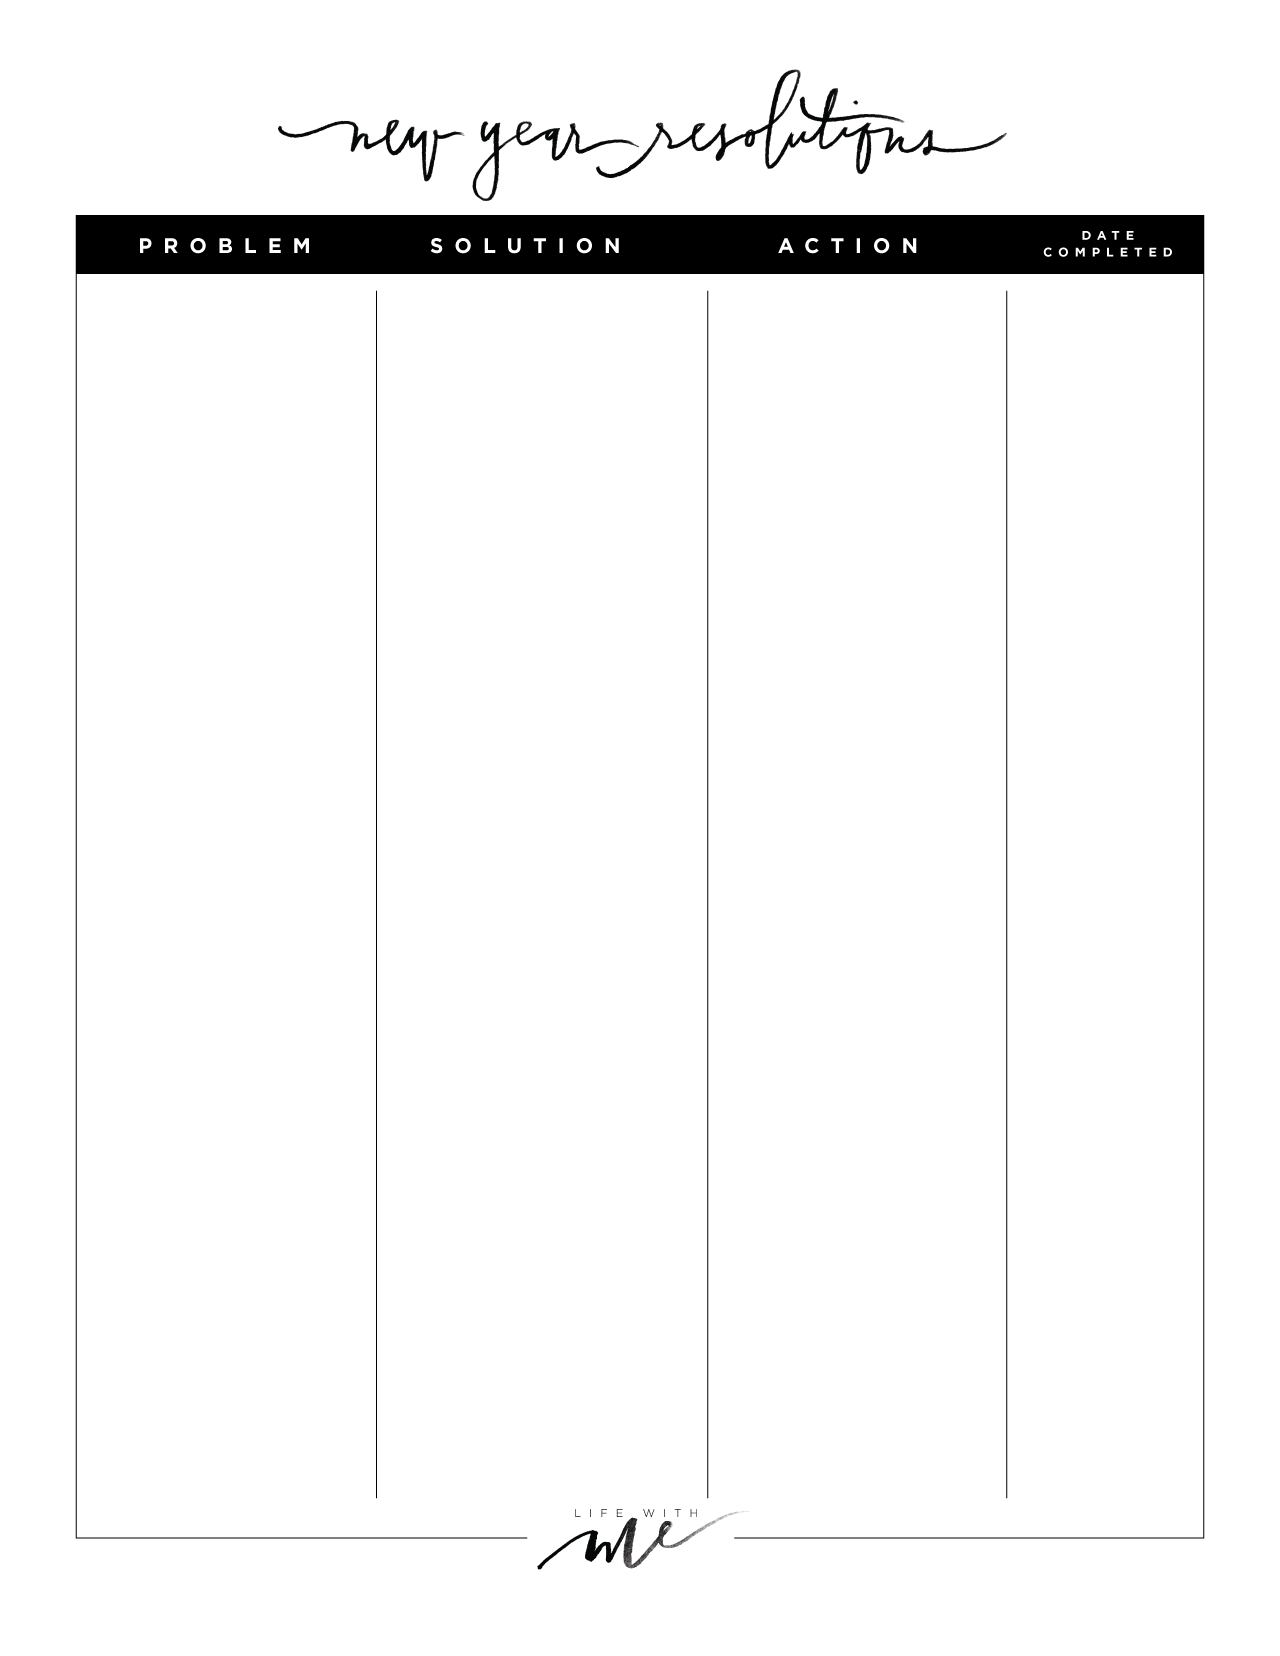 image regarding Goals Printable referred to as Clean Several years Resolutions + Printable Worksheets - Lifetime With Me